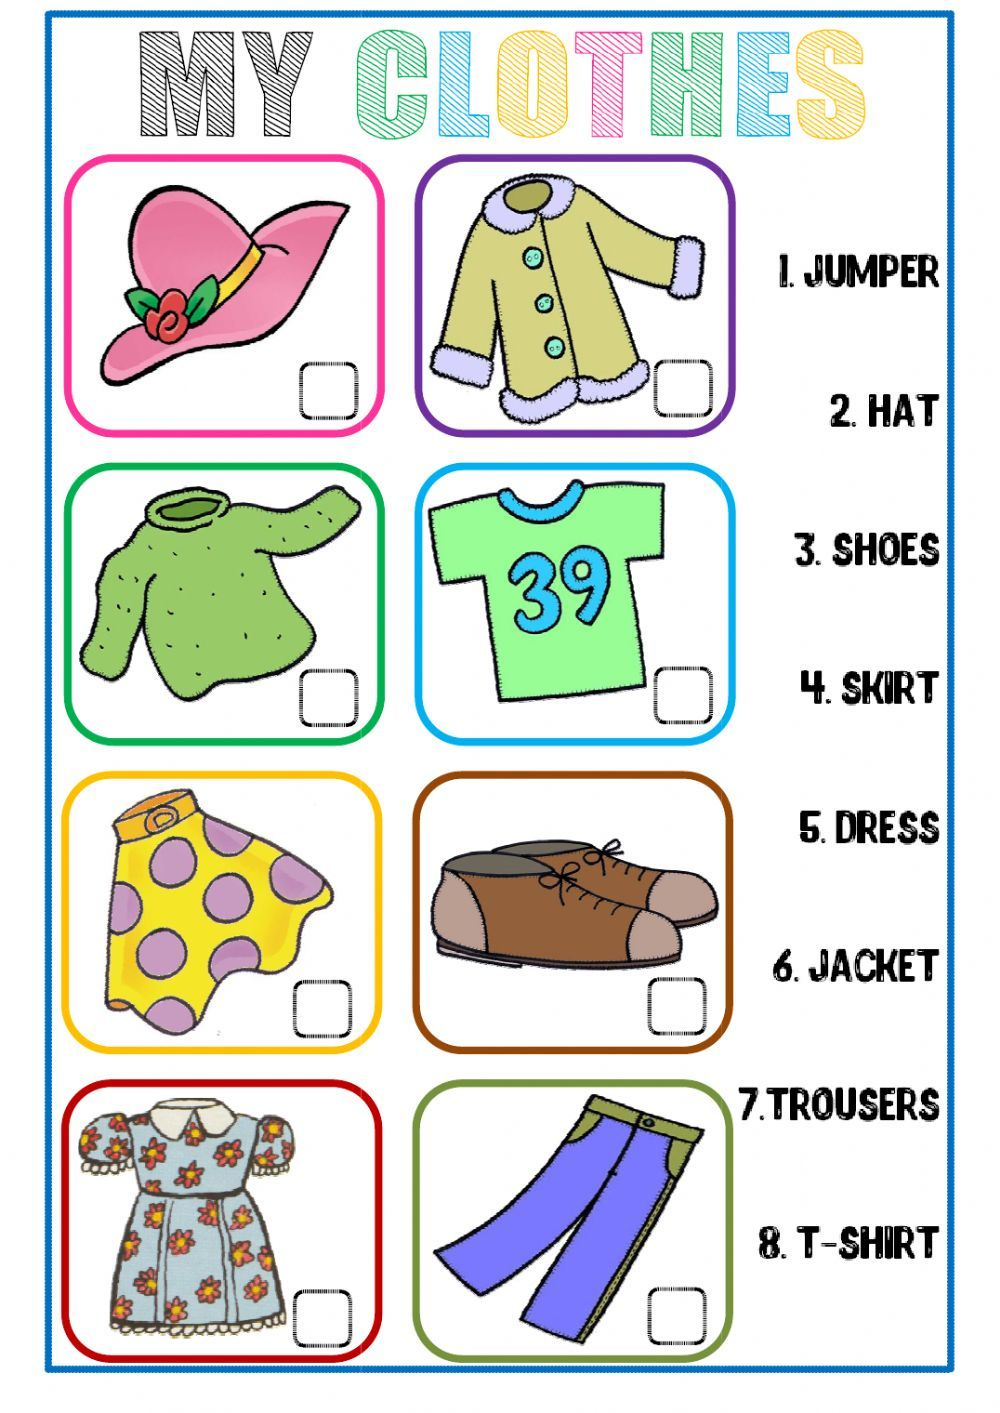 Walking through the jungle worksheet free esl printable worksheets - The Clothes Interactive And Downloadable Worksheet Check Your Answers Online Or Send Them To Your Your Teachersecond Languageeslworksheets